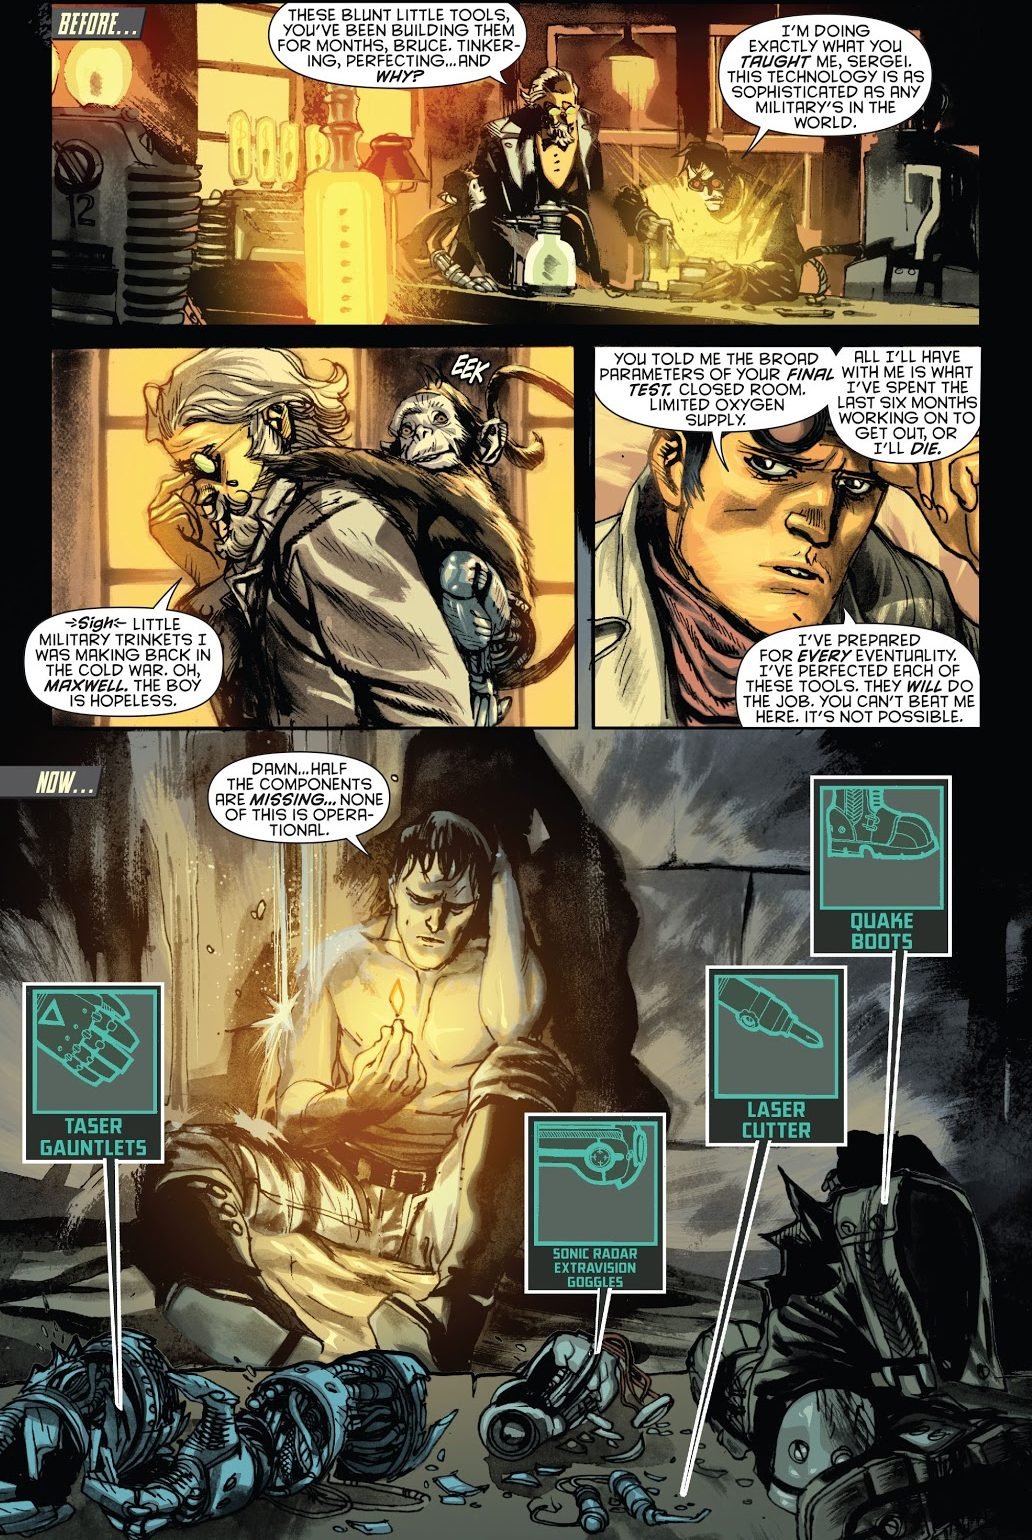 Bruce Wayne Learns How To Think Outside The Box (New 52)